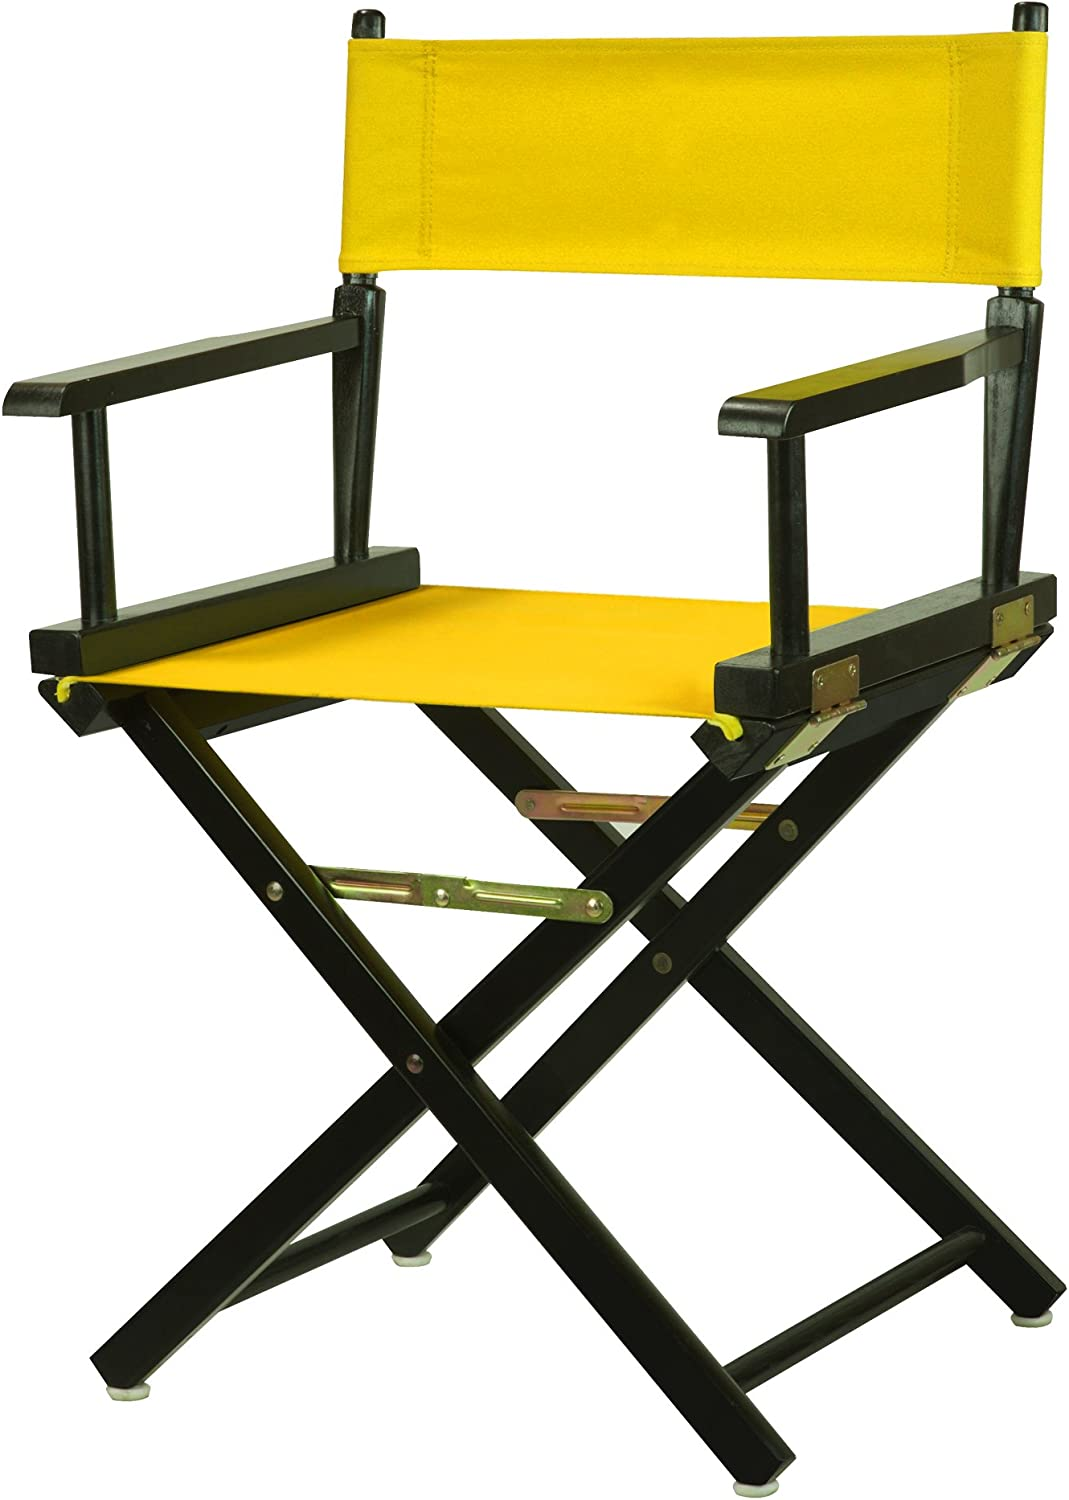 Casual Home 200-02 021-34 Director's Chair Black Frame Canvas, 18 -Classic Height, gold